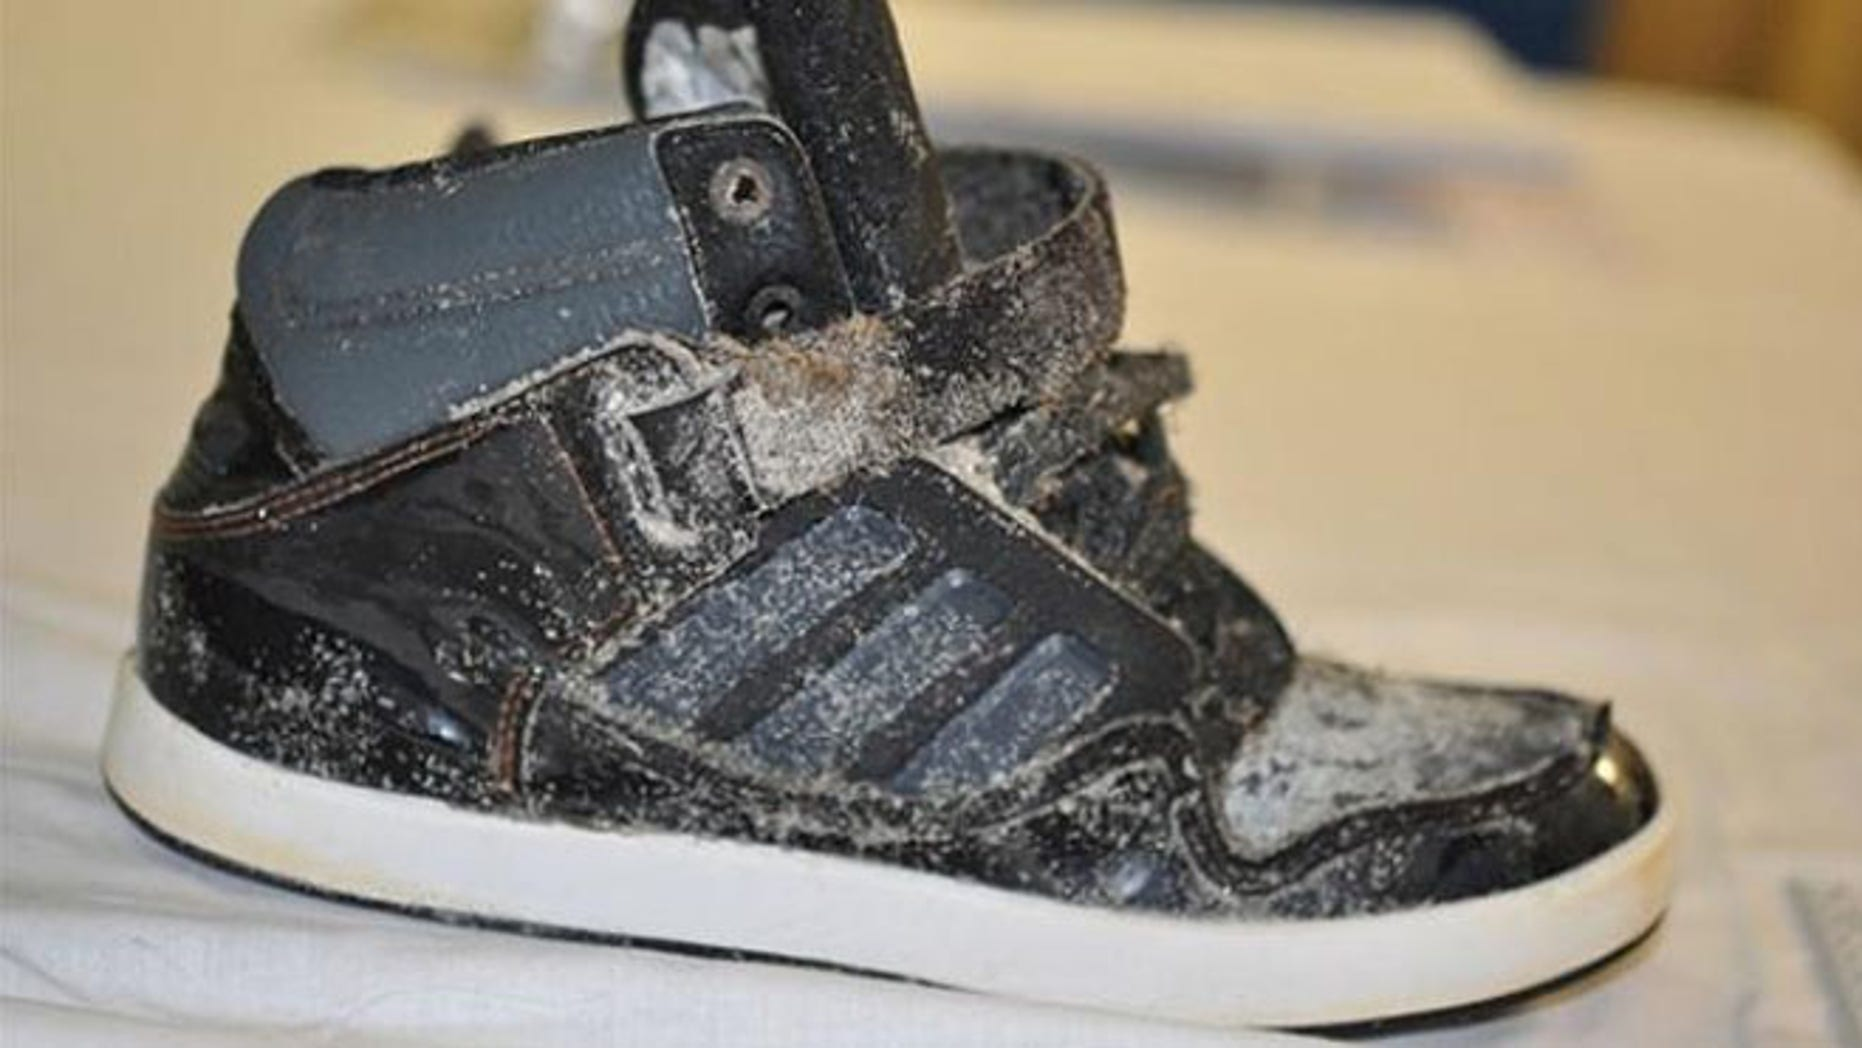 An Adidas high-top sneaker was discovered with the remains of a foot inside.